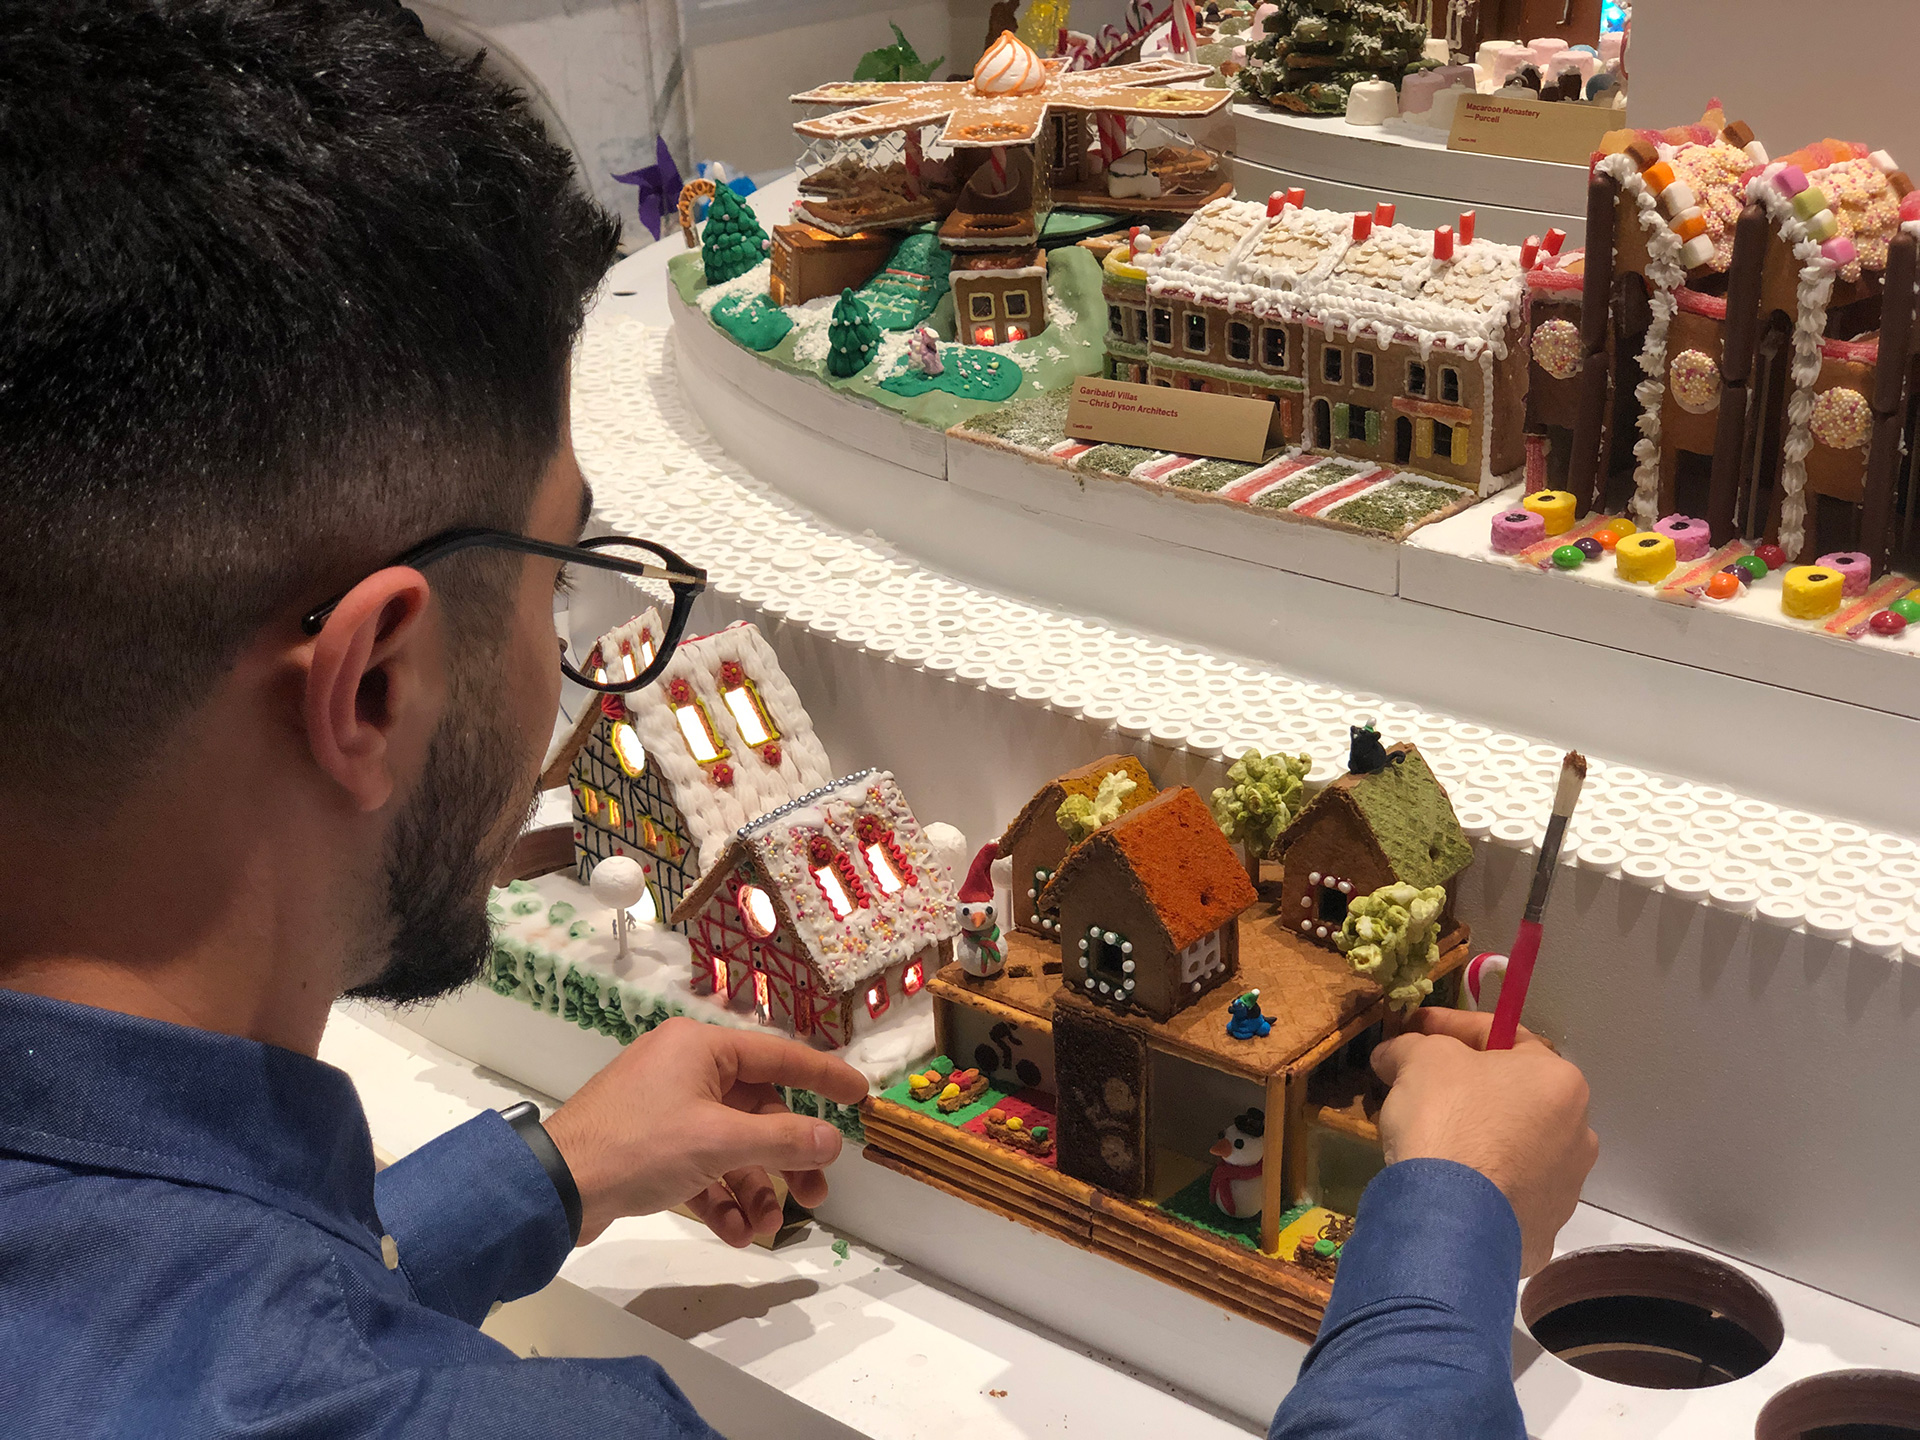 KC+A architects created the Expresso Wheels at the Gingerbread City | Gingerbread City | Museum of Architecture | Somerset House | STIRworld